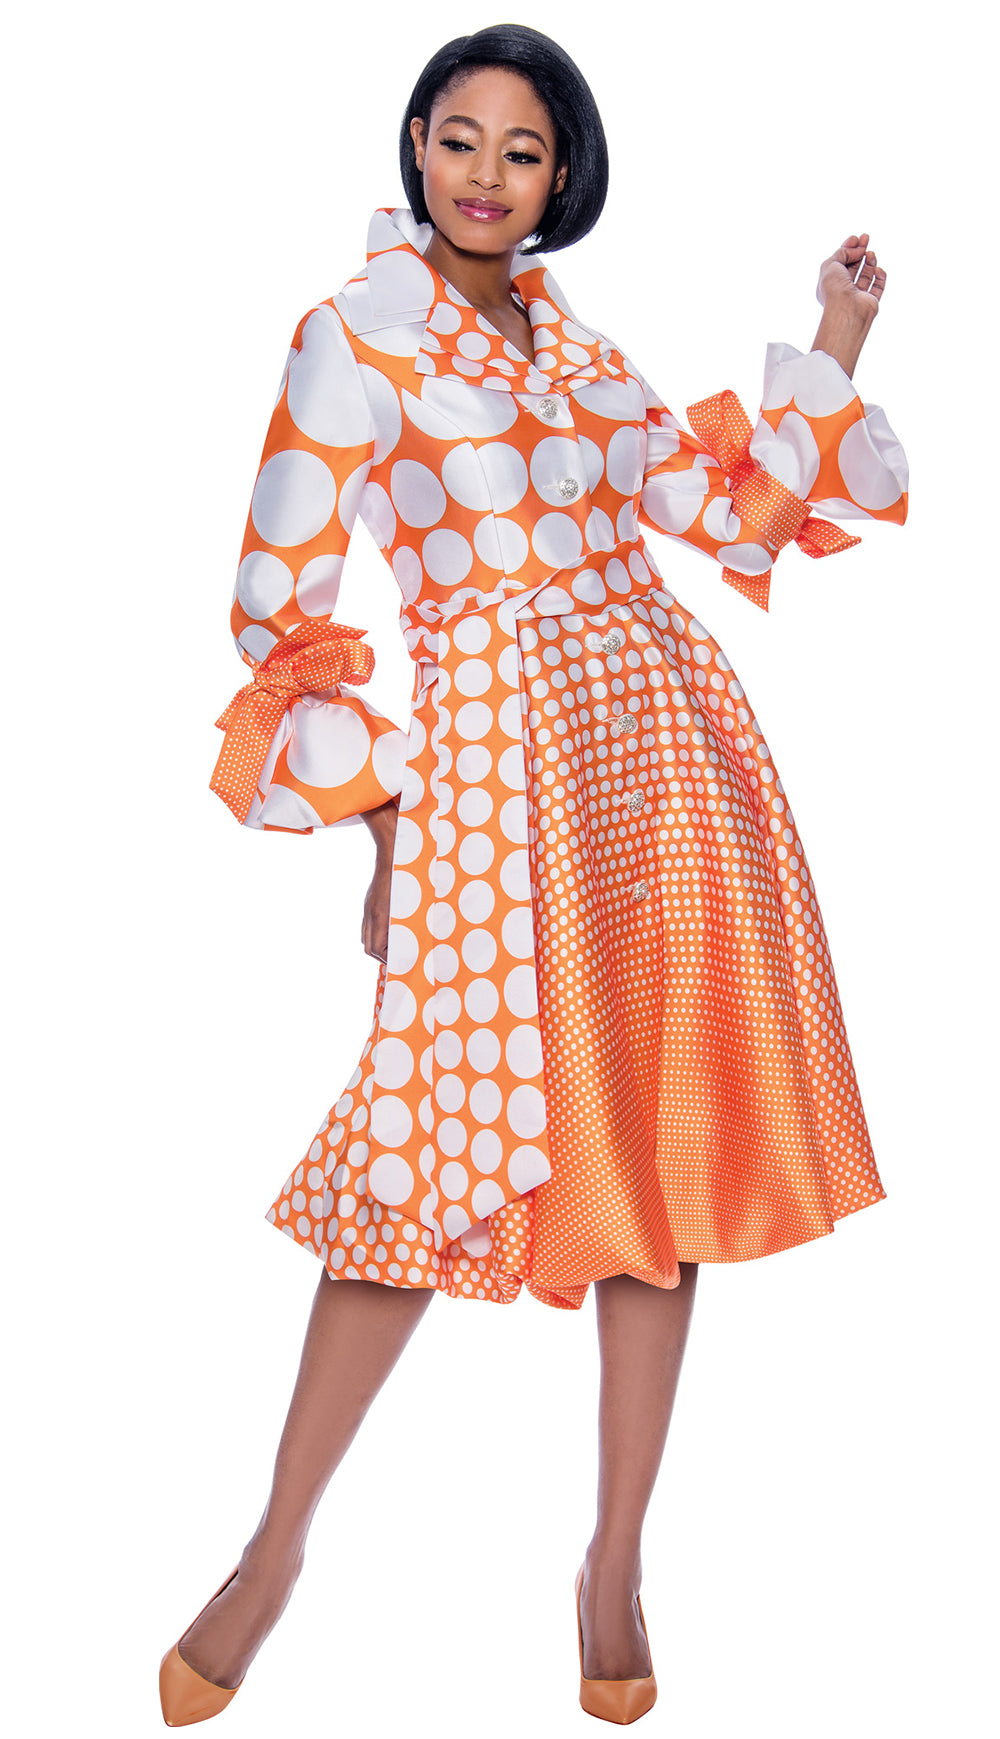 Terramina Dress 7794-Orange/White - Church Suits For Less